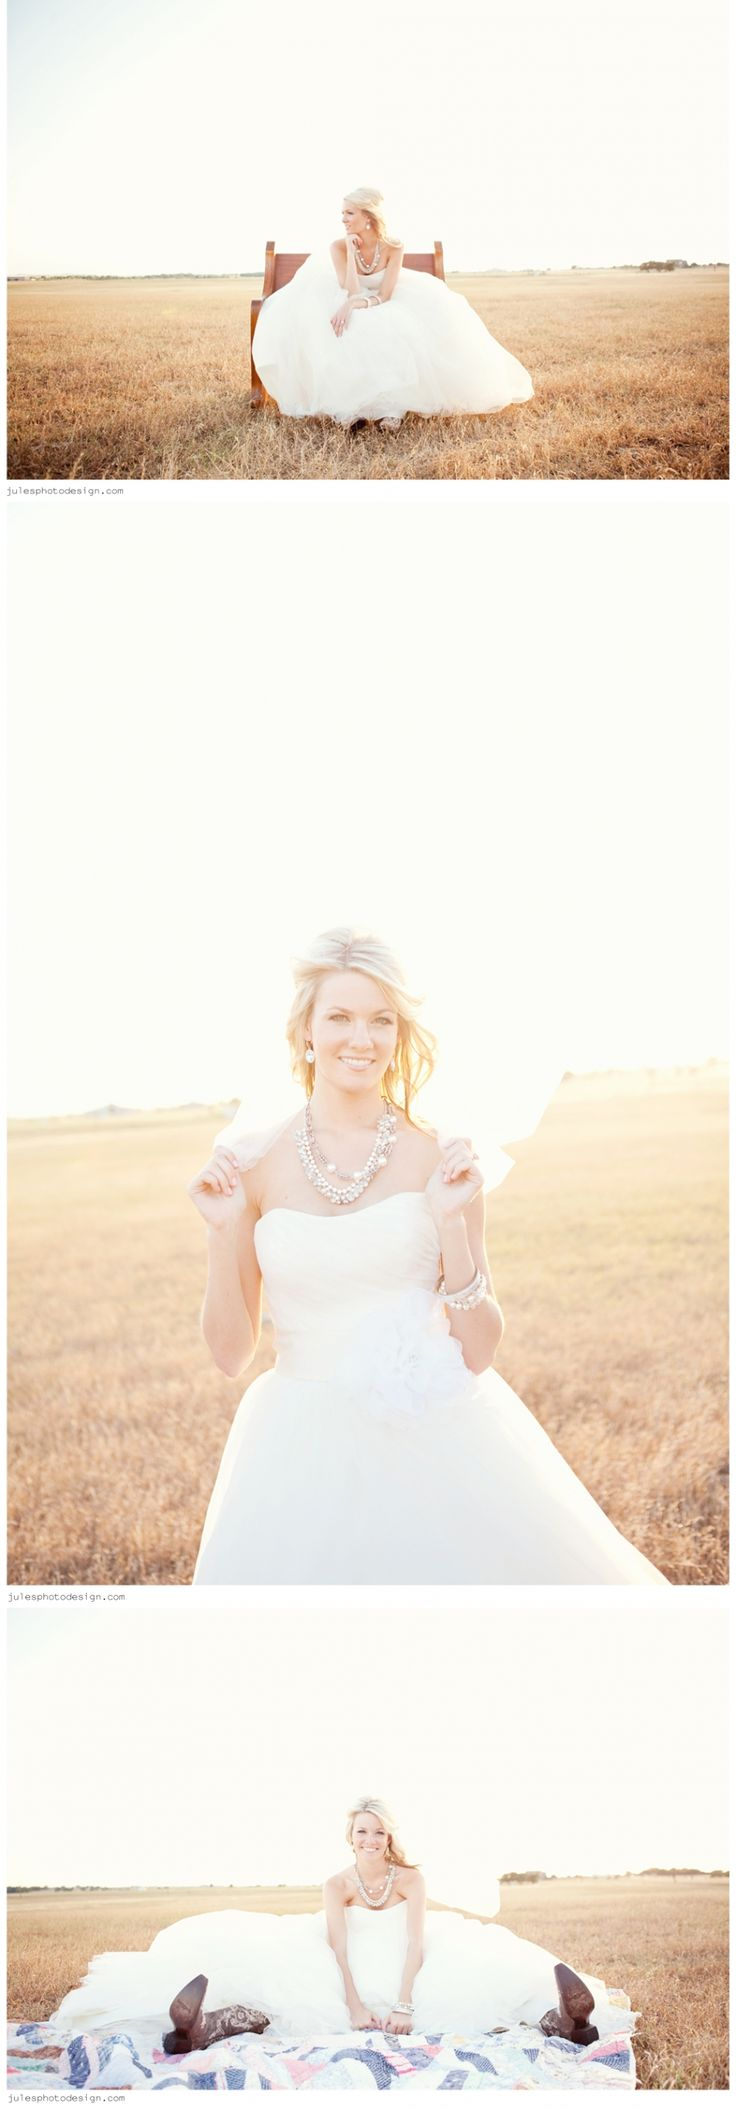 Outdoor Bridals #country #field #bridals julesphotodesign.com